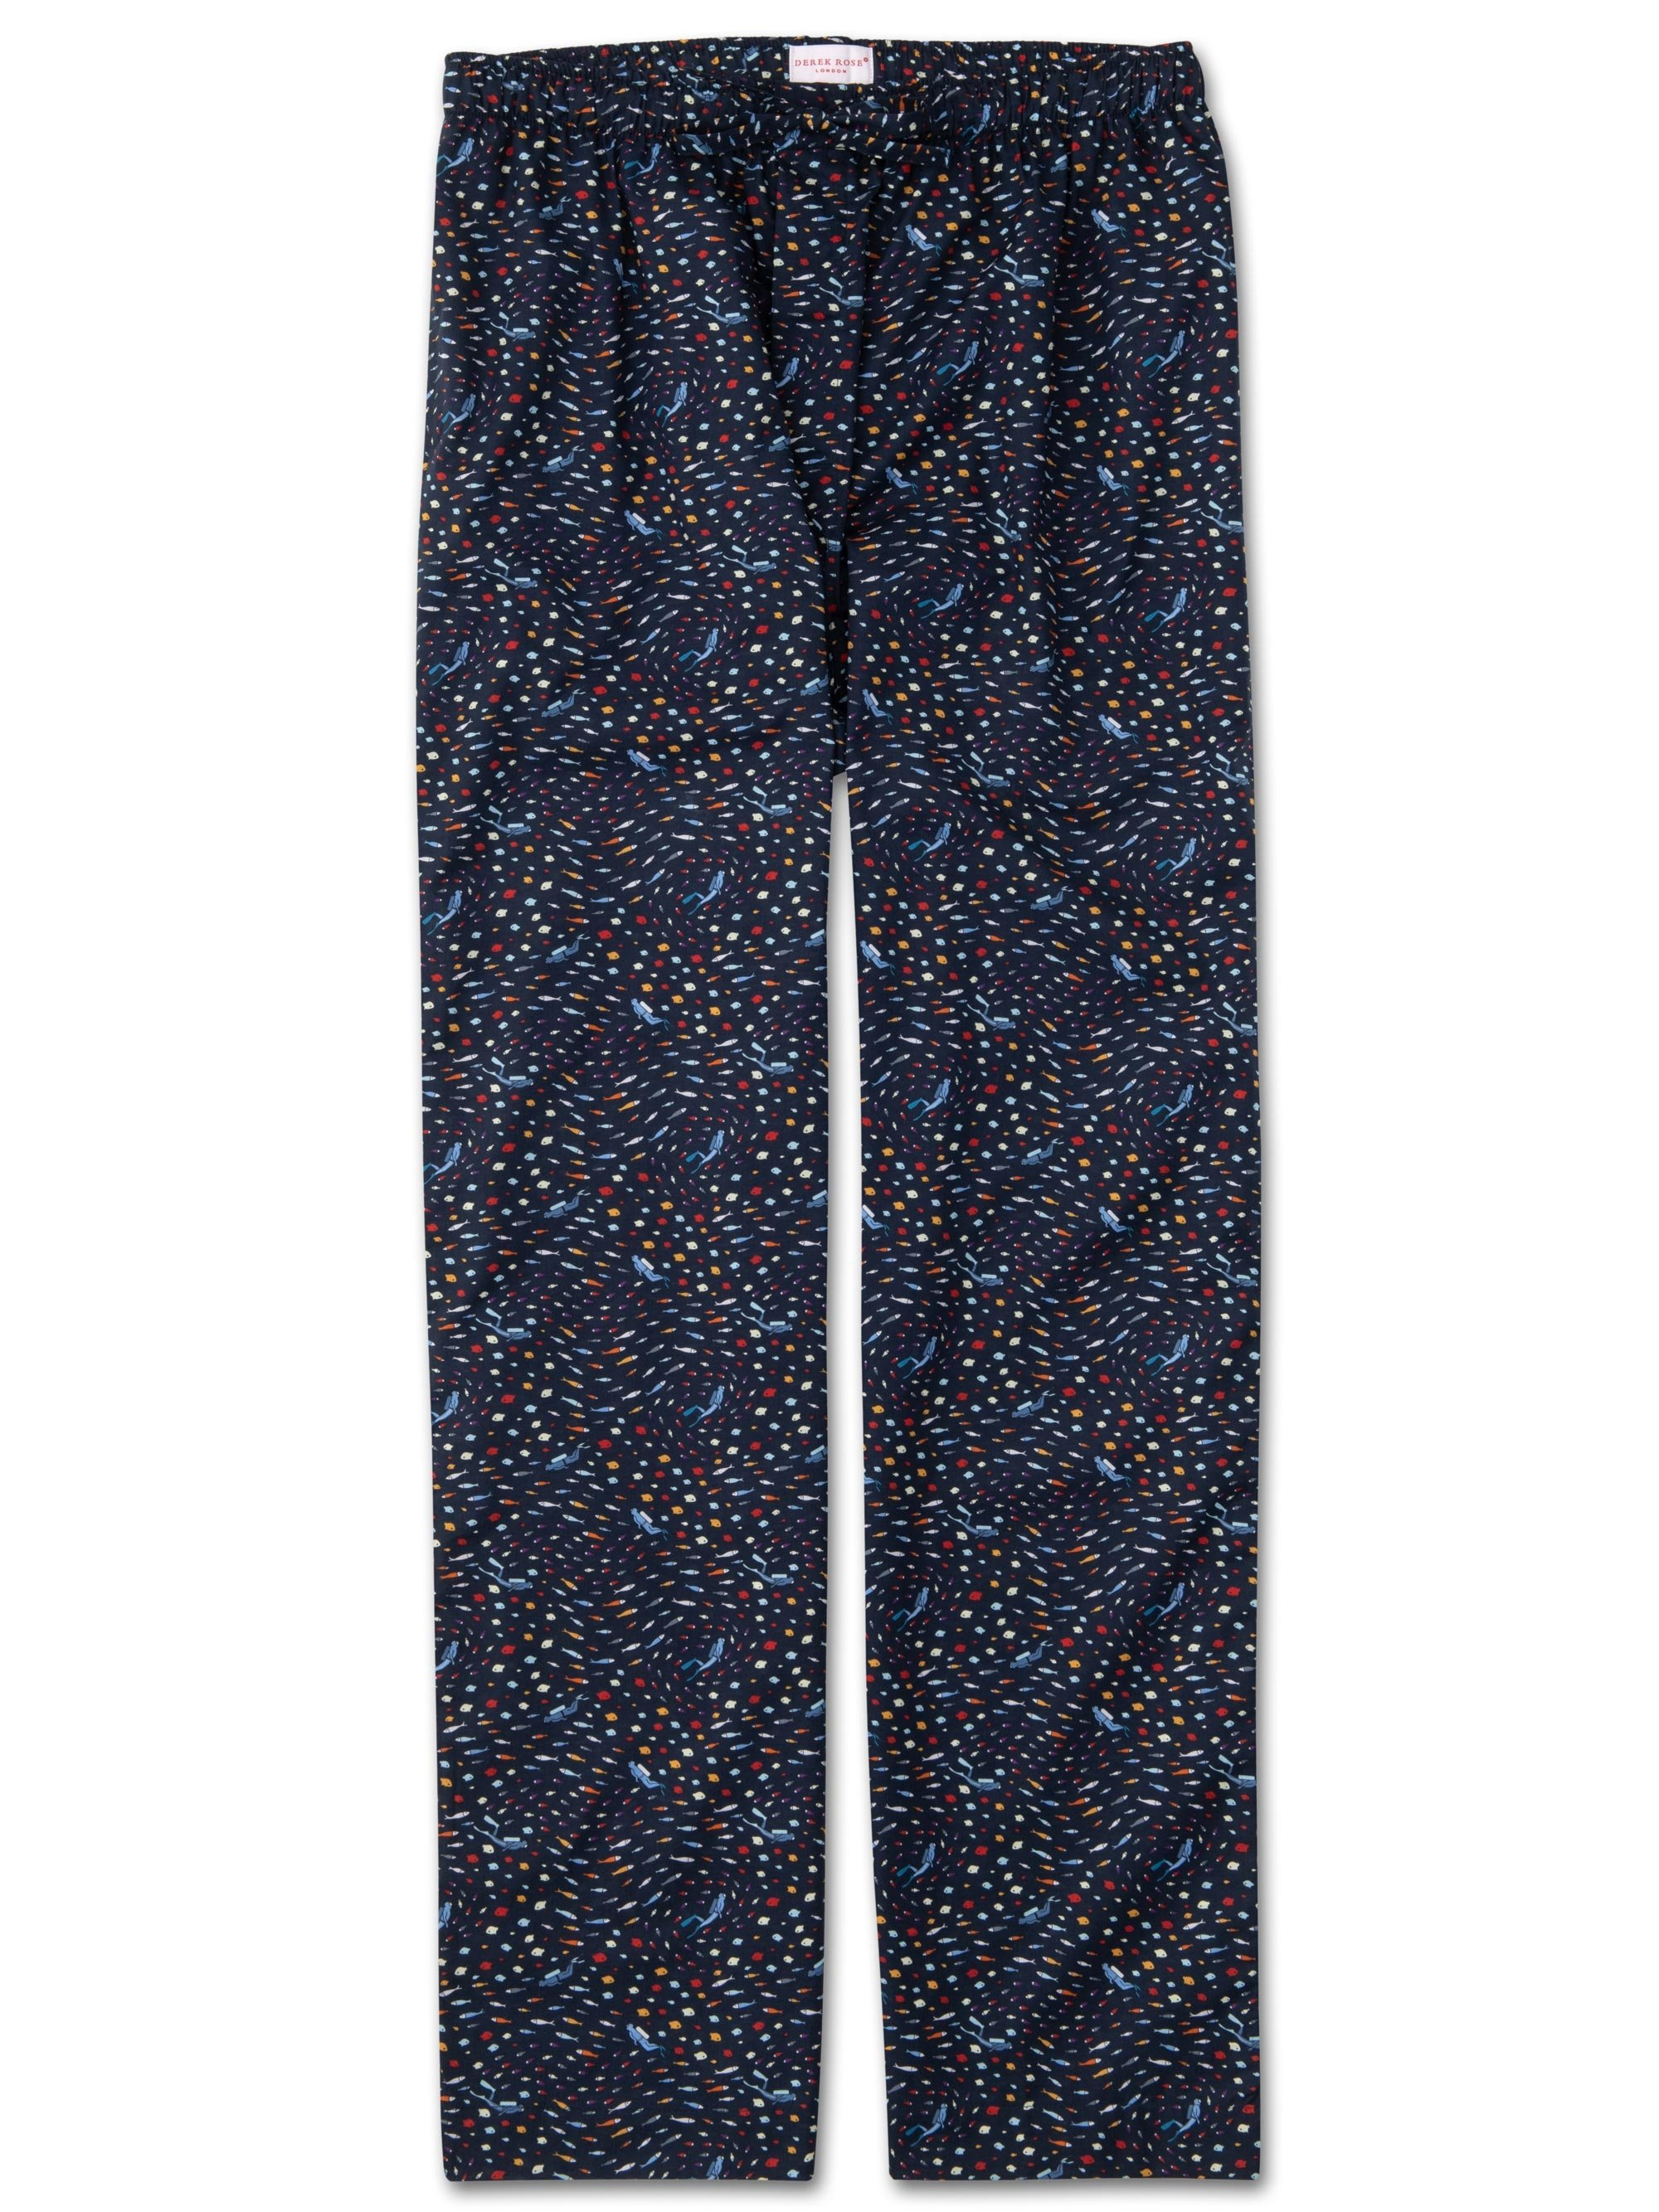 Men's Lounge Trousers Ledbury 29 Cotton Batiste Navy